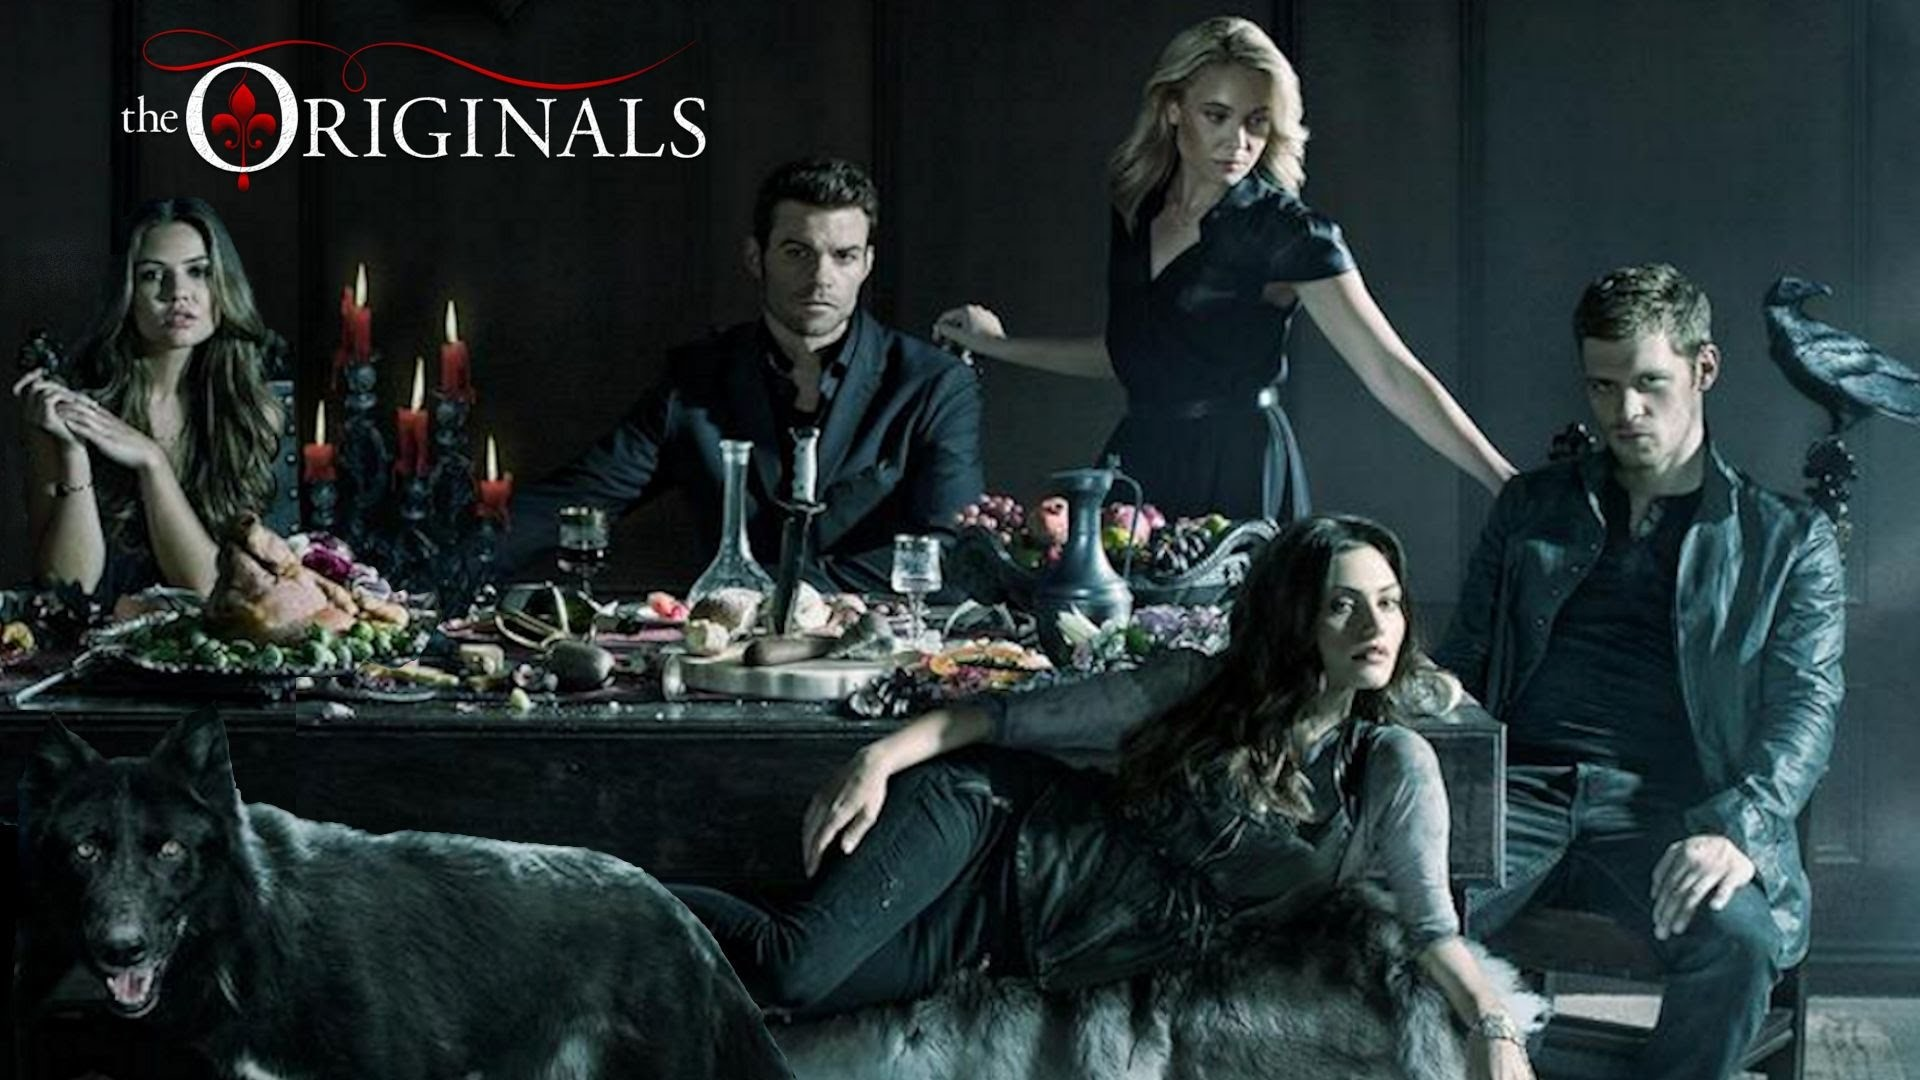 Vampire Diaries Hd Wallpapers 1366x768 The Originals Wallpapers 76 Images